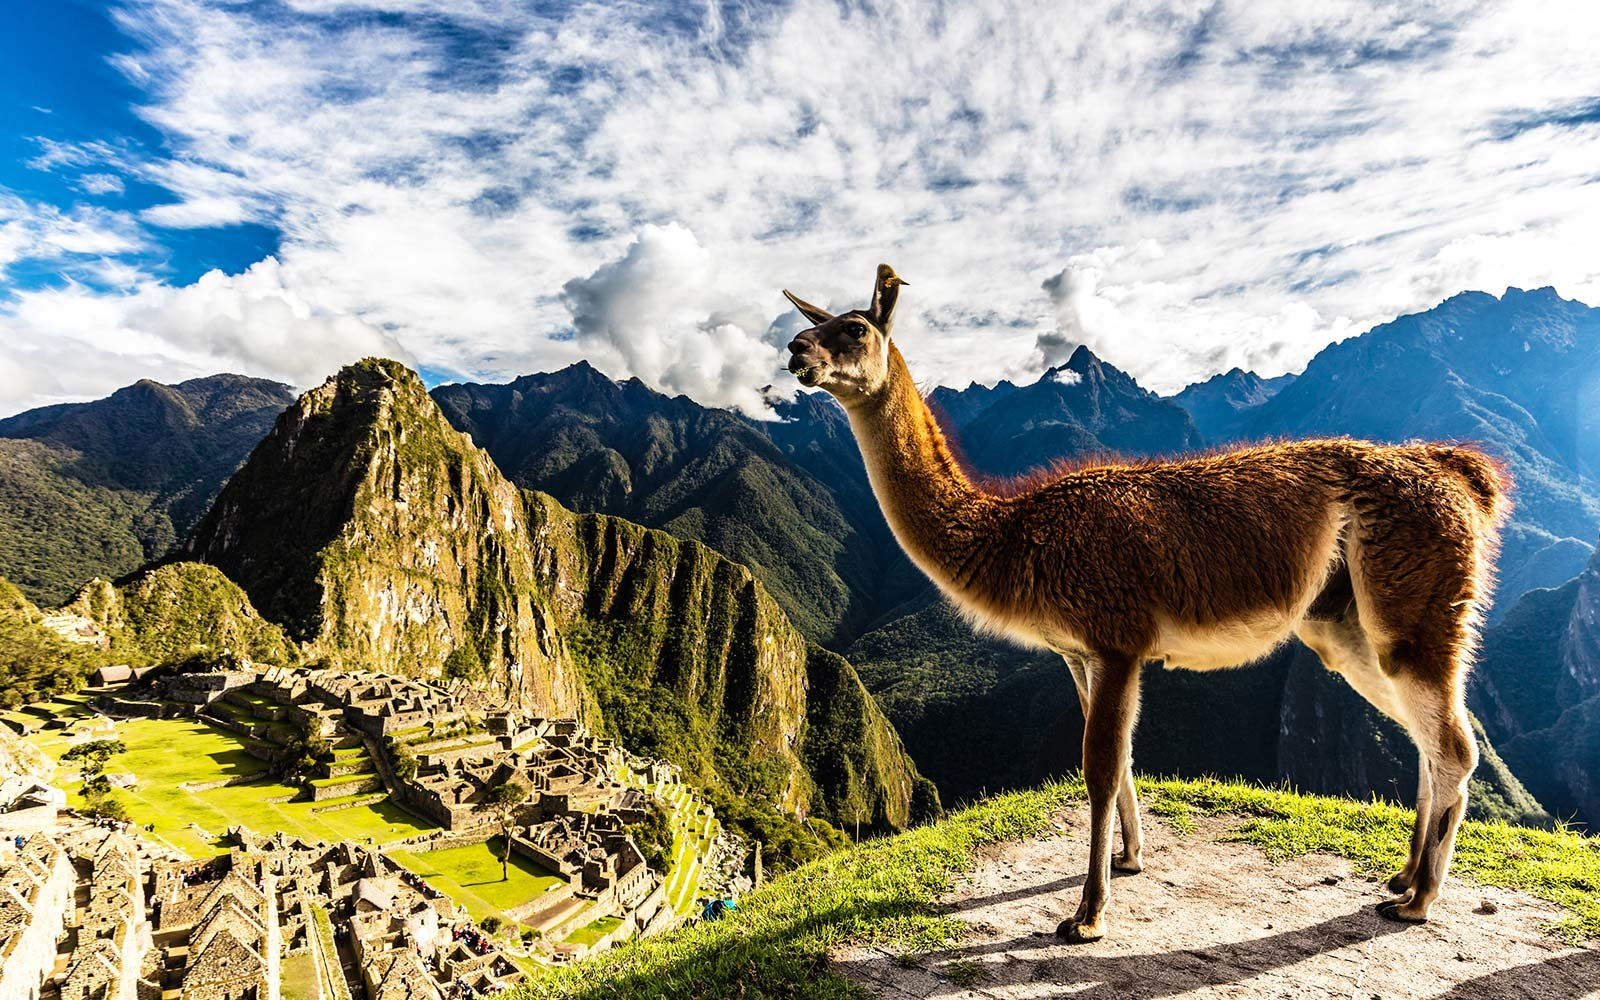 Machu Picchu Cuzco Peru Alpaca Llama UNESCO world heritage site travel